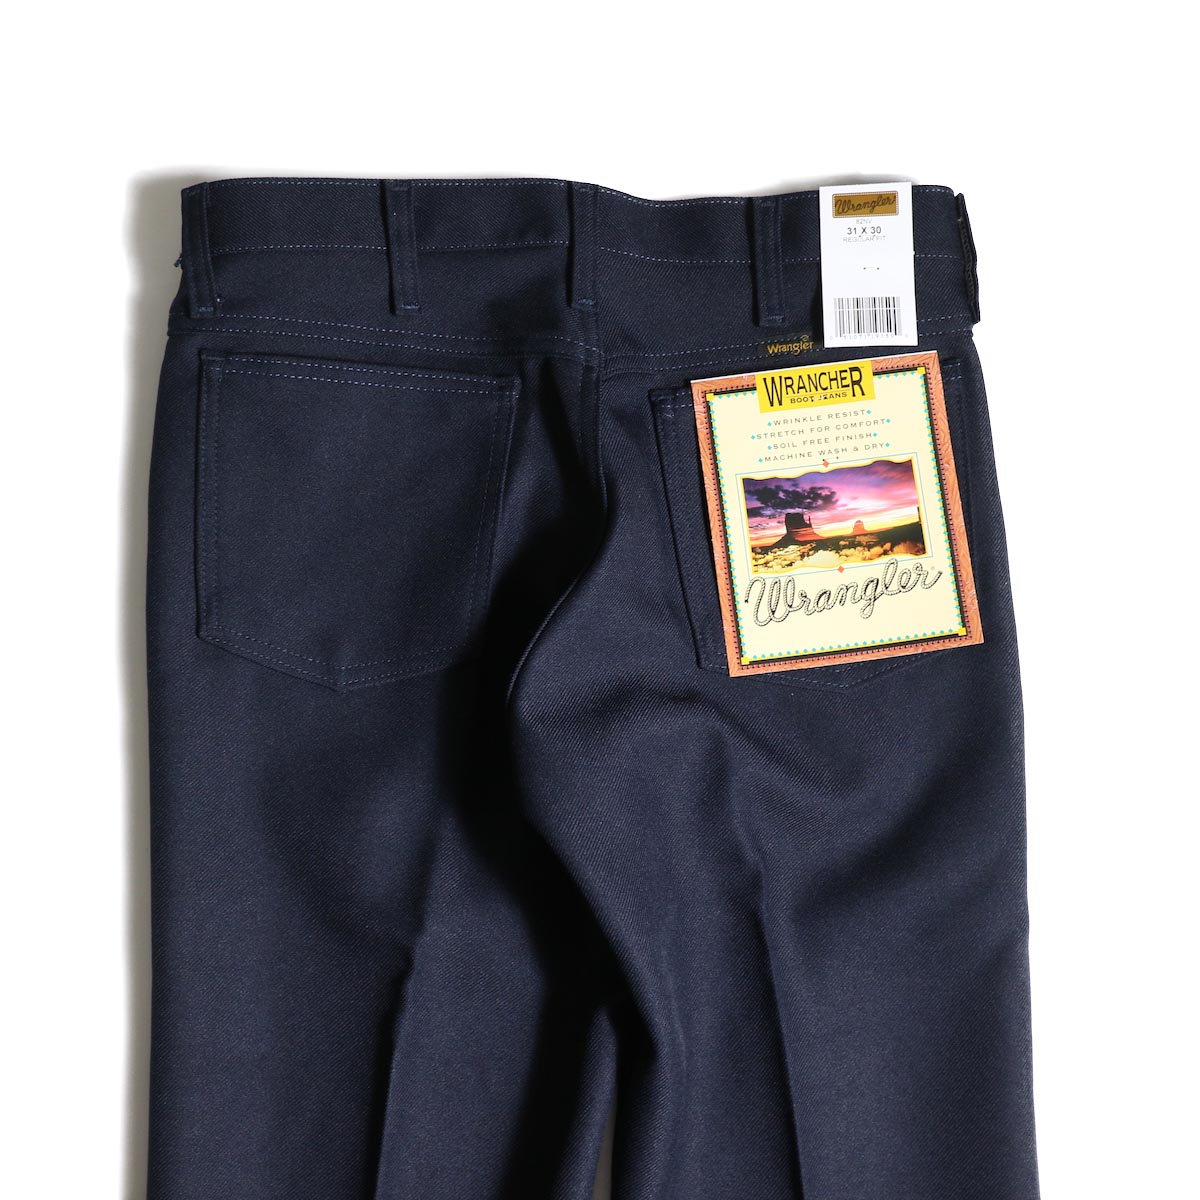 Wrangler / WRANCHER DRESS JEANS (Navy)ヒップポケット